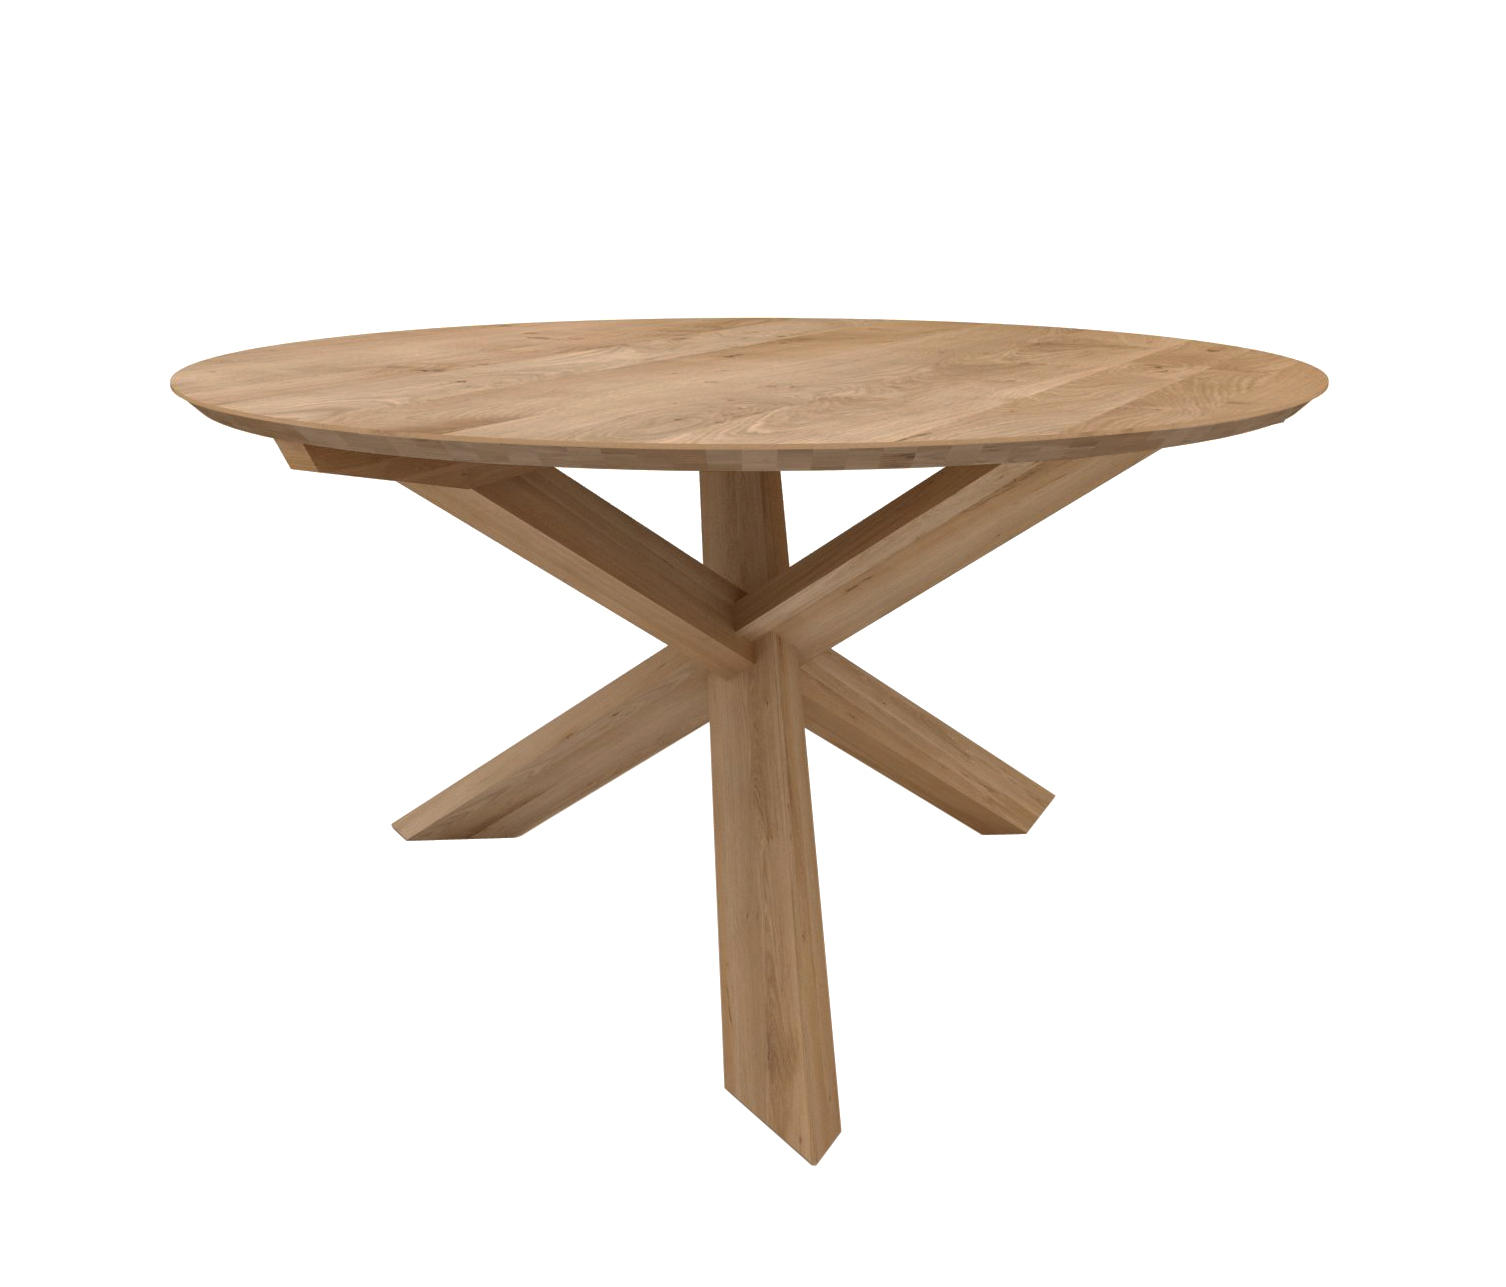 ... Oak Circle Dining Table By Ethnicraft | Dining Tables ...